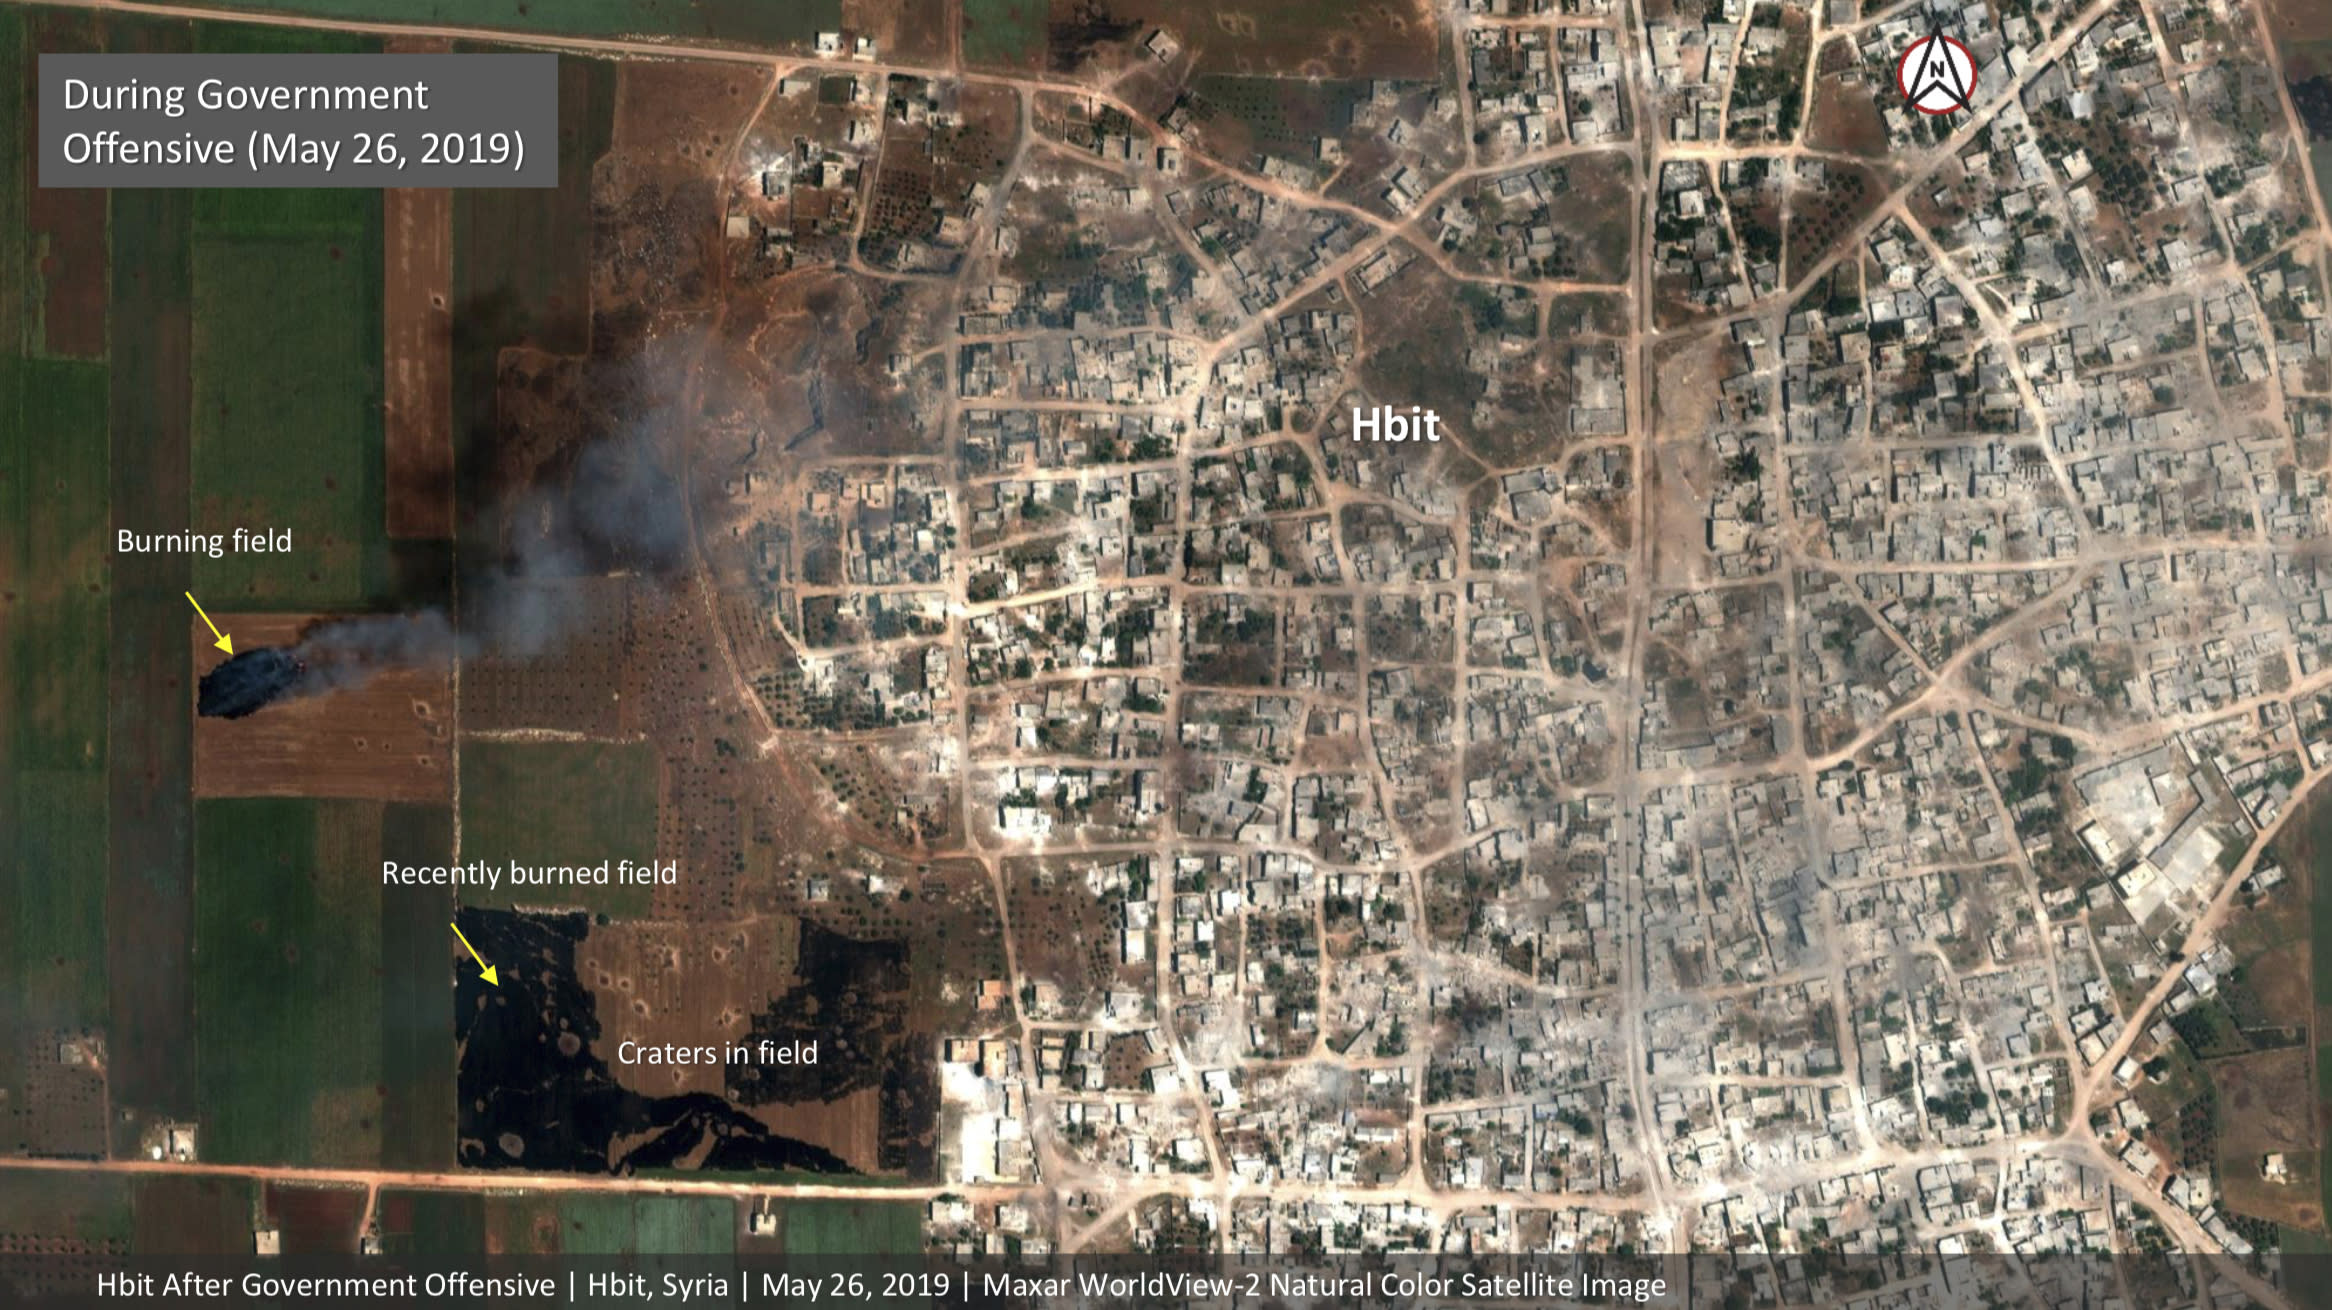 This satellite image provided by Maxar Technologies on Tuesday, May 28, 2019 shows significant damage to Habeet, Syria on May 26 as a result of a government offensive against the last rebel stronghold in the country. The images, provided to the Associated Press by the Colorado-based Maxar Technologies show fire still raging in olive groves and orchards during harvest season around Kfar Nabudah and Habeet, two villages on the edge of Idlib province where fighting has focused. (Maxar Technologies via AP)